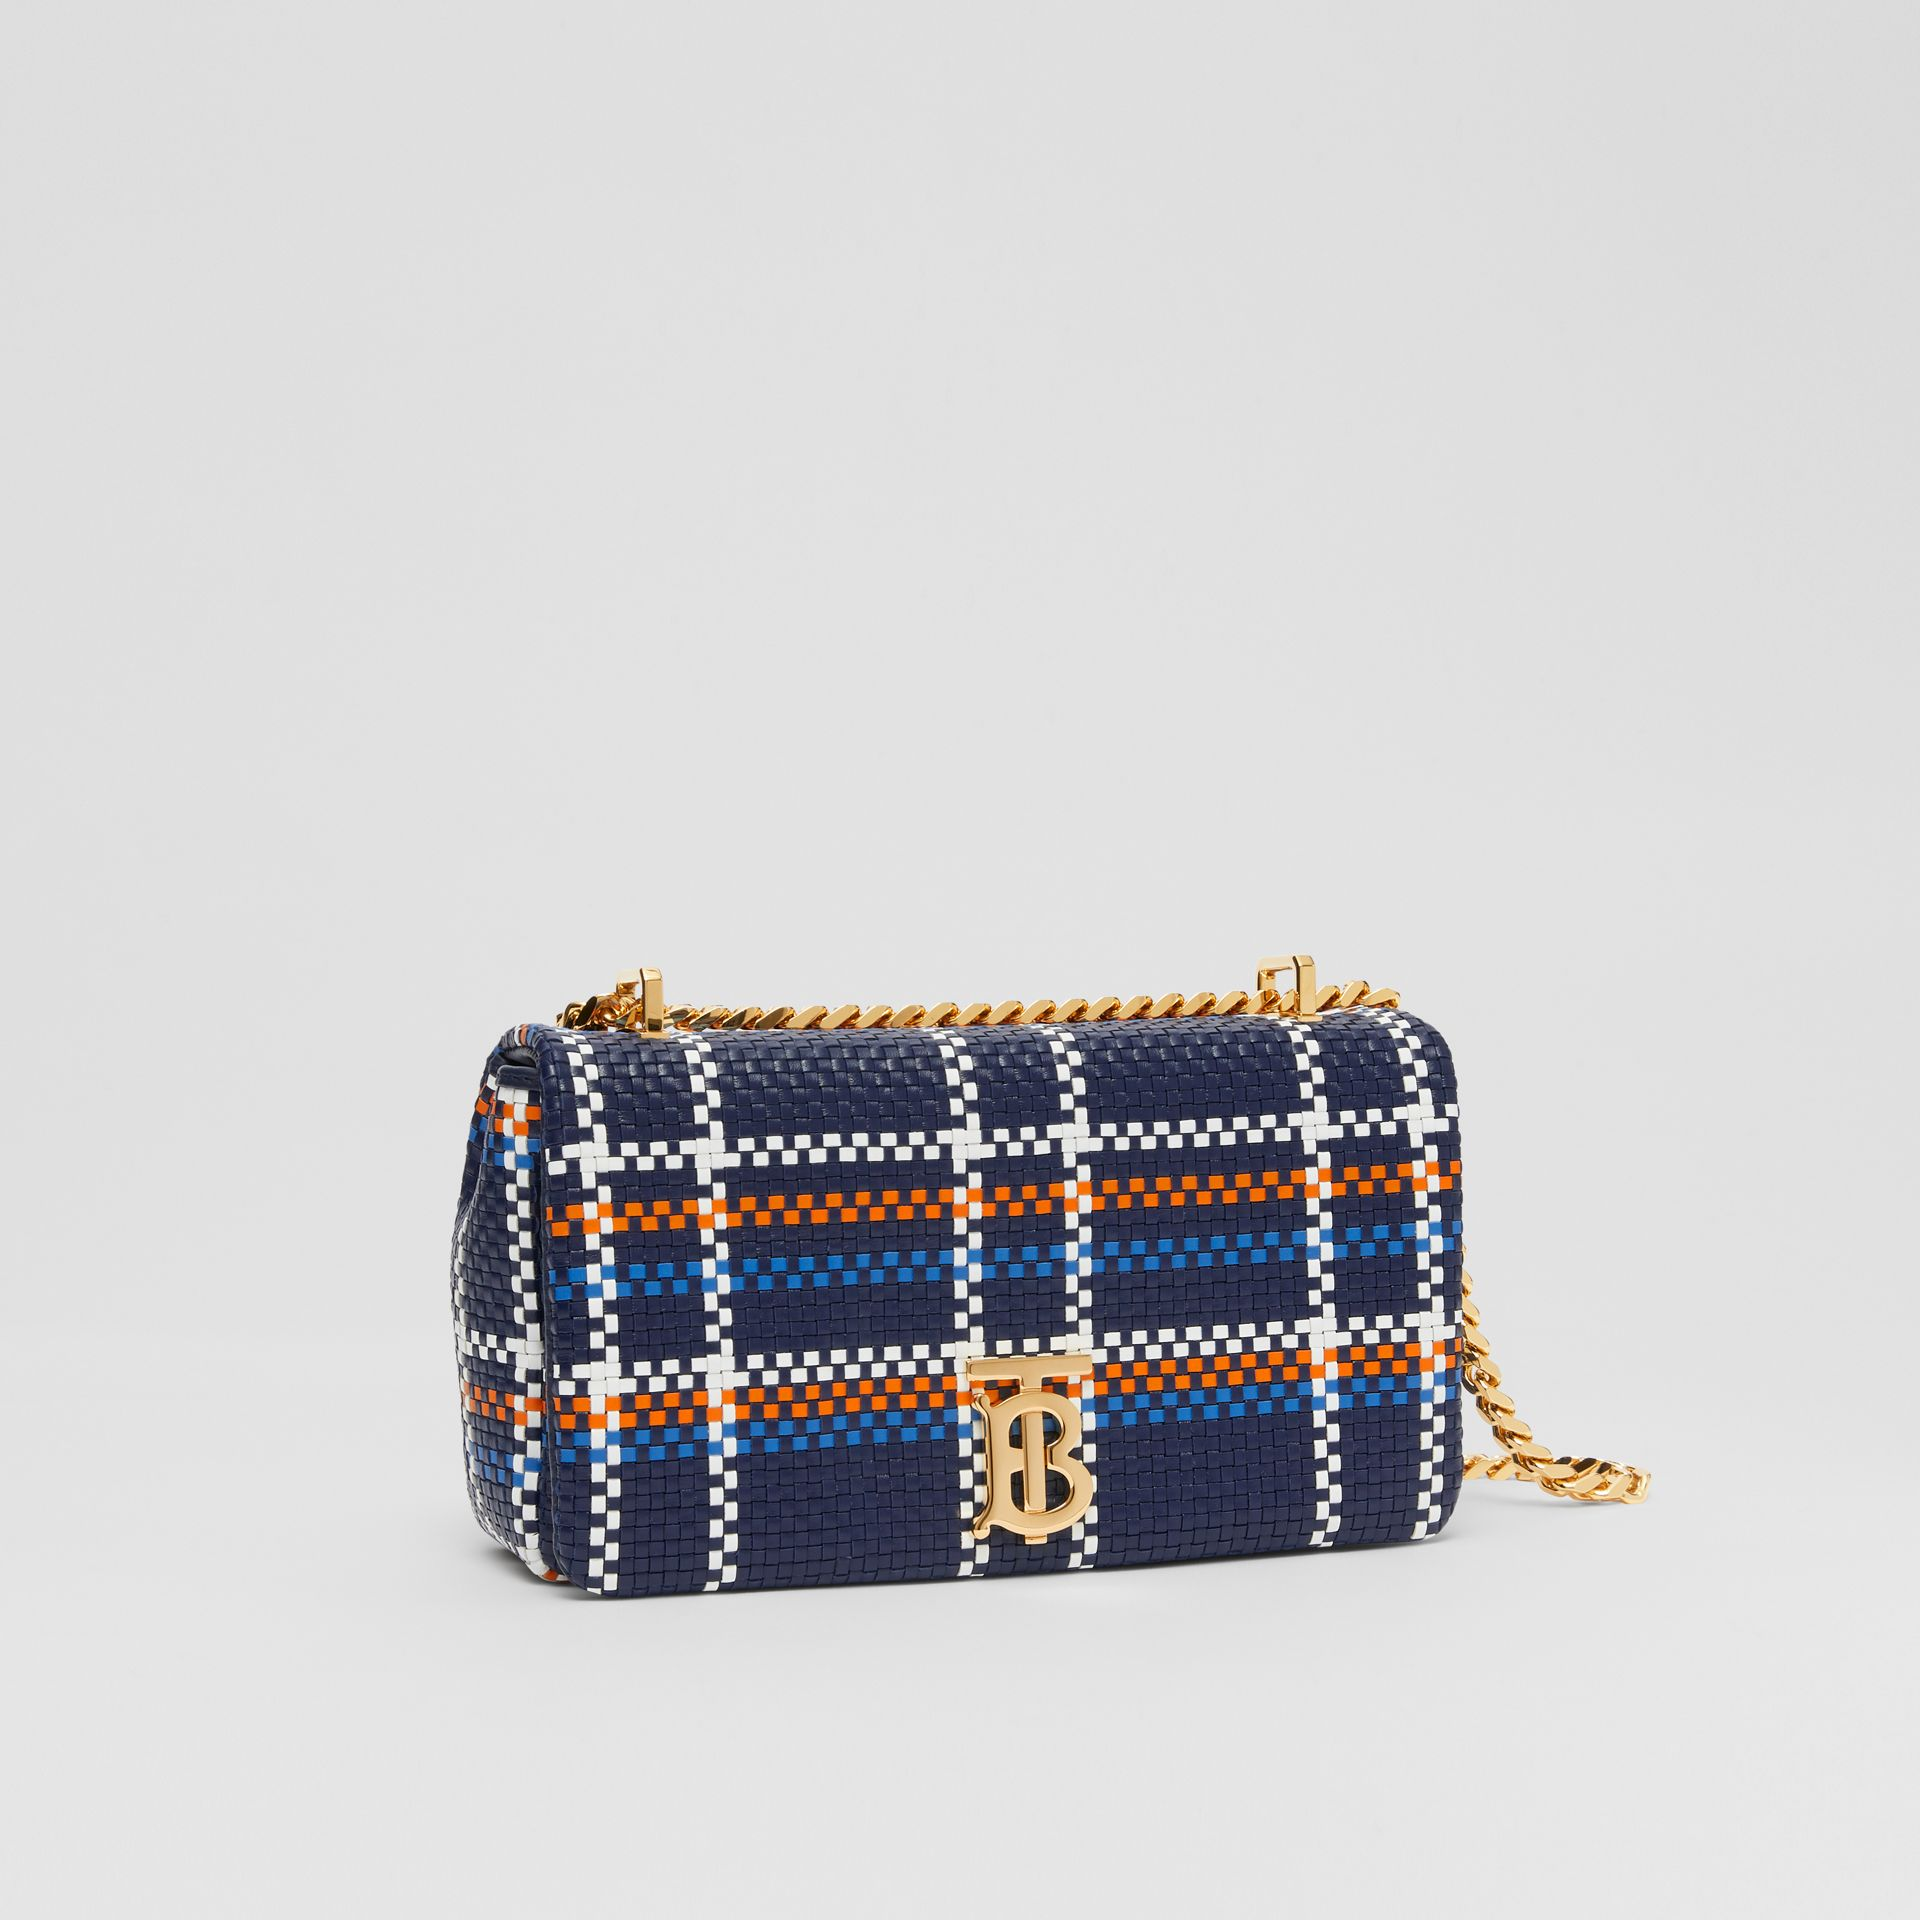 Small Latticed Leather Lola Bag in Blue/white/orange - Women | Burberry - gallery image 3